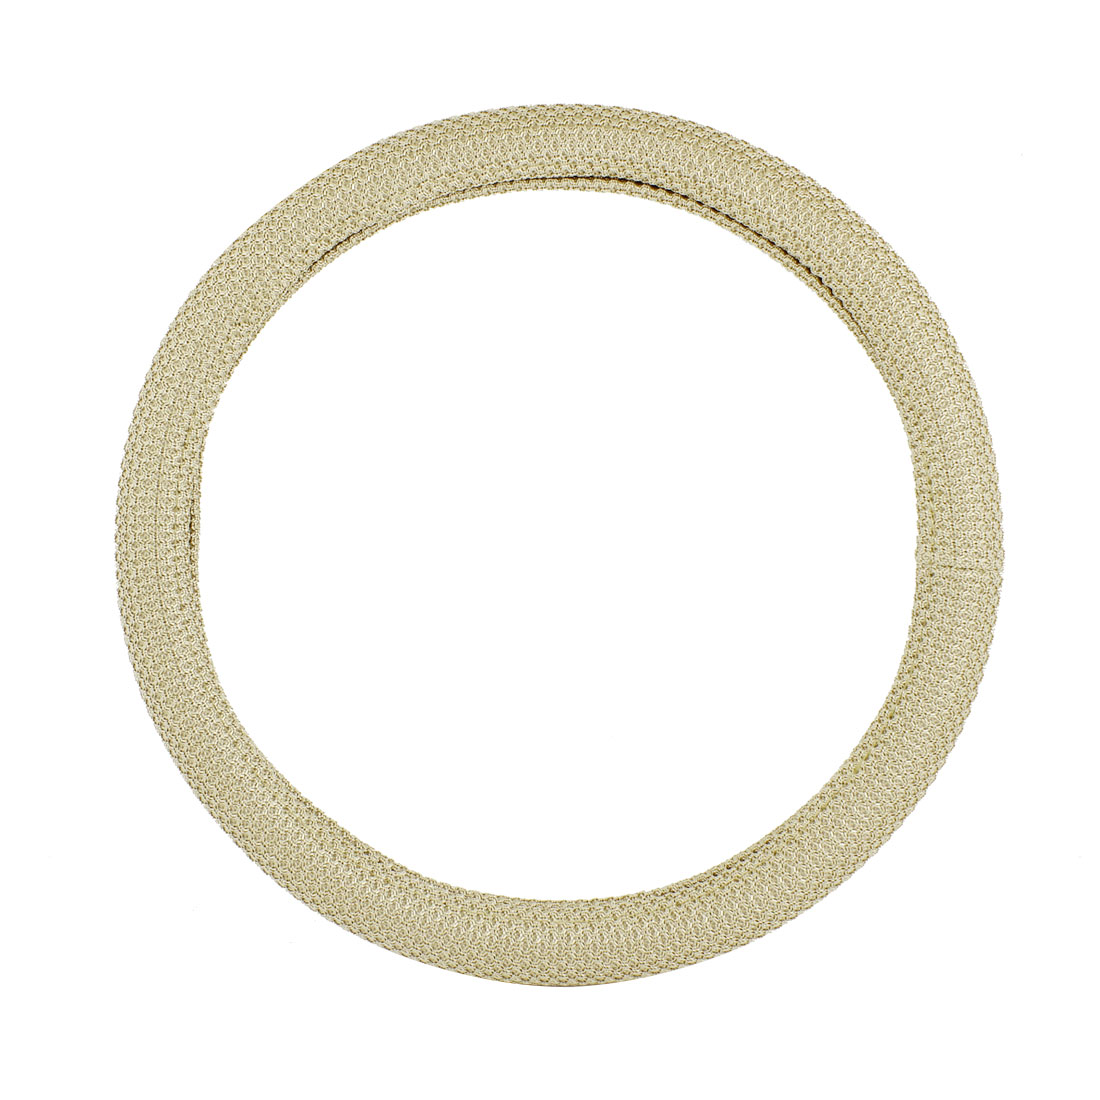 "38cm 15"" Dia Beige Nylon Coated Steering Wheel Cover Protector for Car"